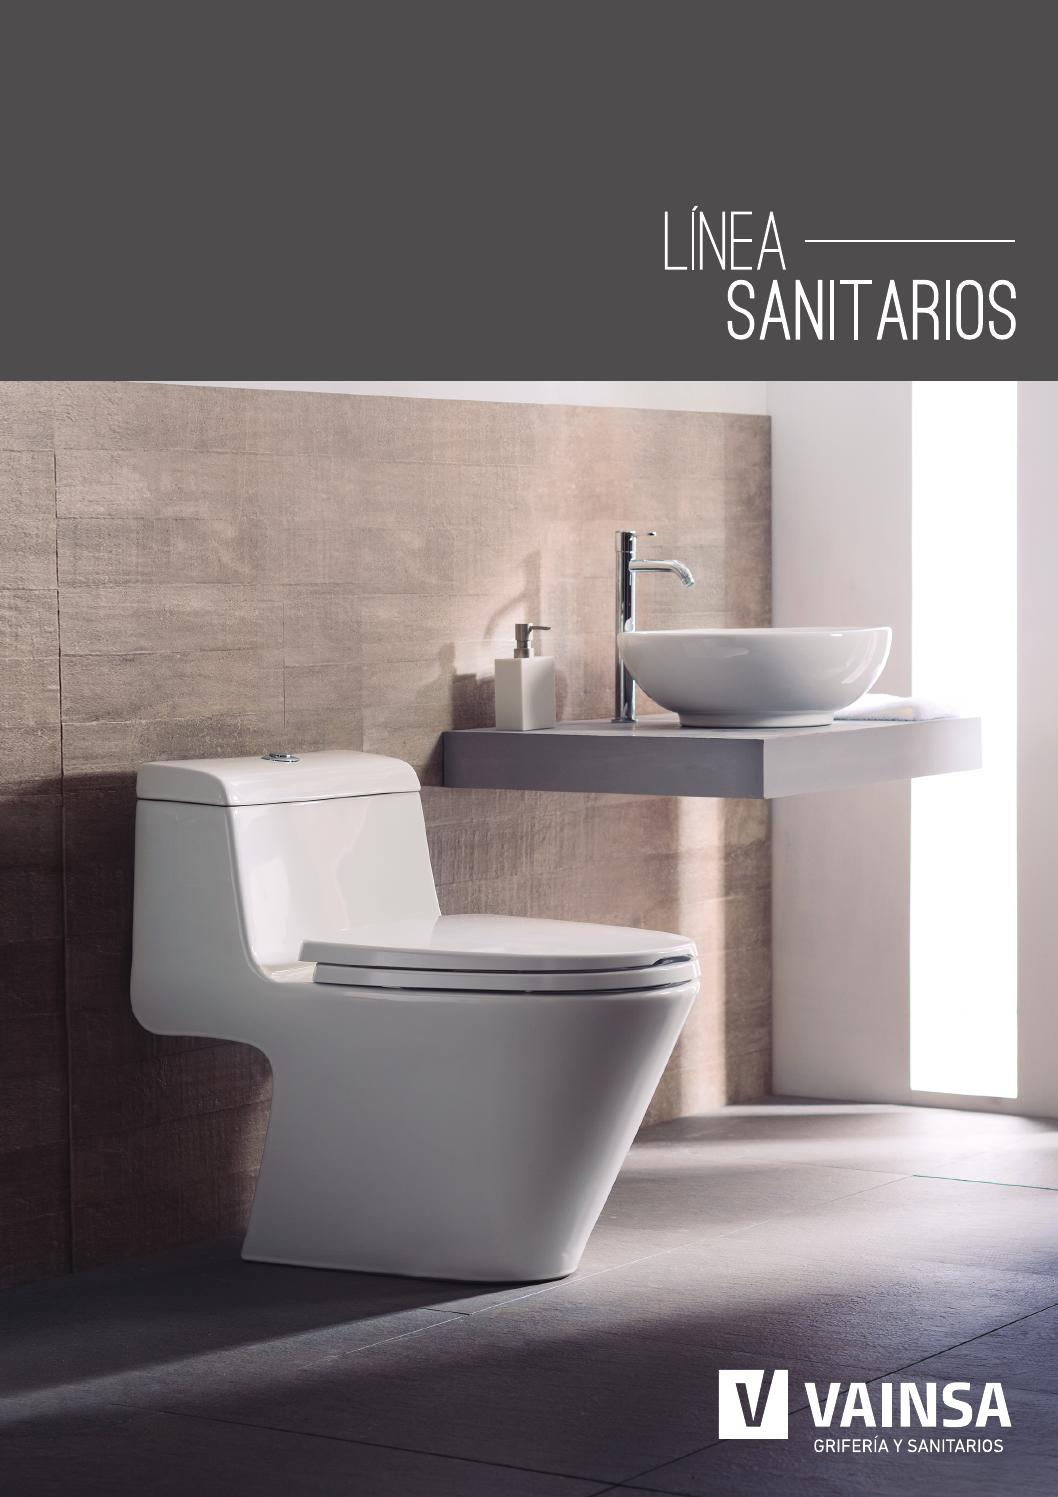 Catalogo sanitarios 2014 by vainsa grifer a y sanitarios for Muebles peru catalogo